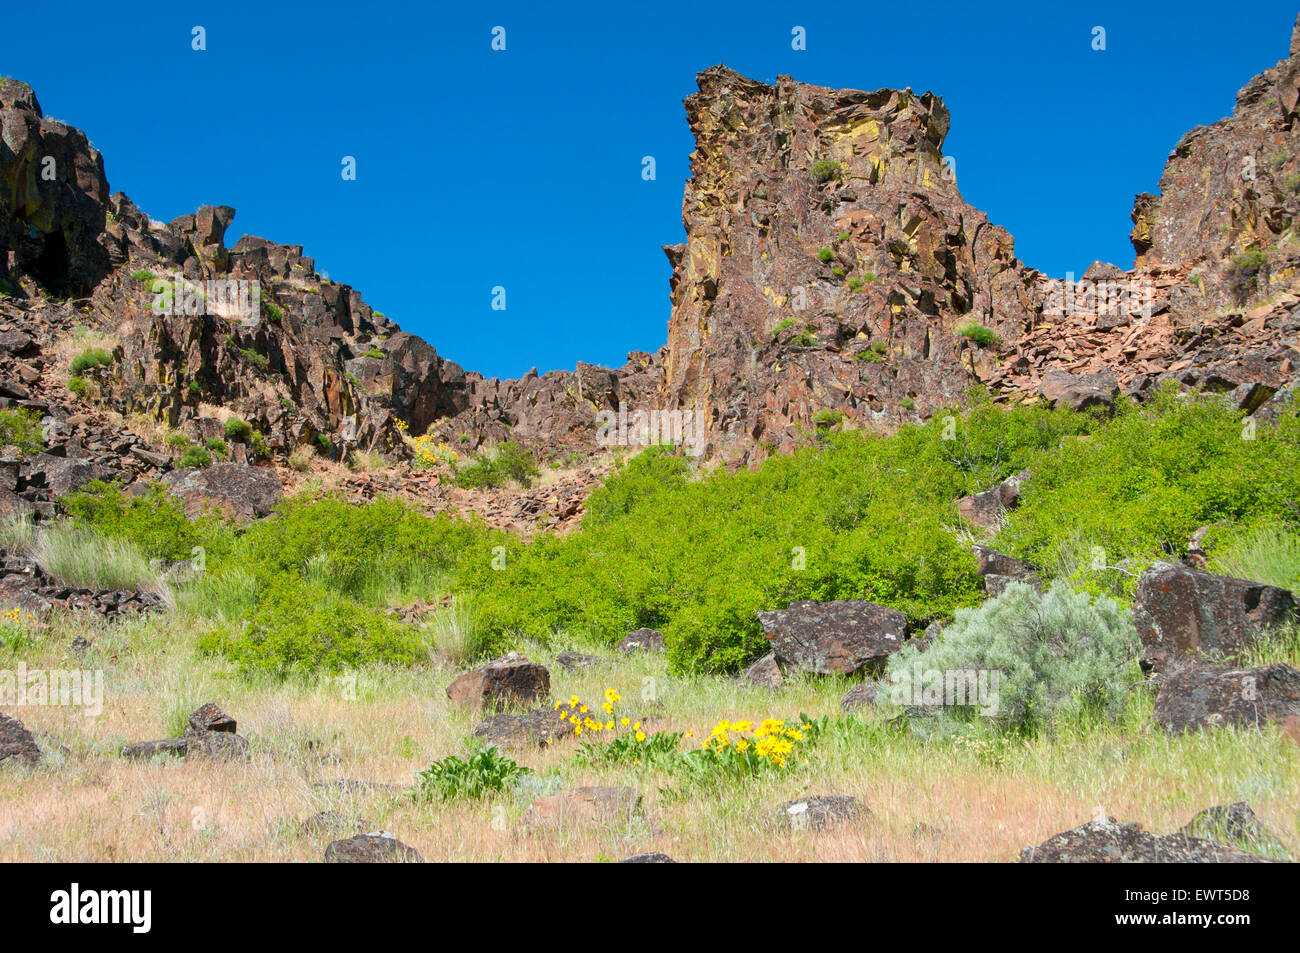 Horsethief Butte cliffs, Columbia Hills State Park, Columbia River Gorge National Scenic Area, Washington - Stock Image